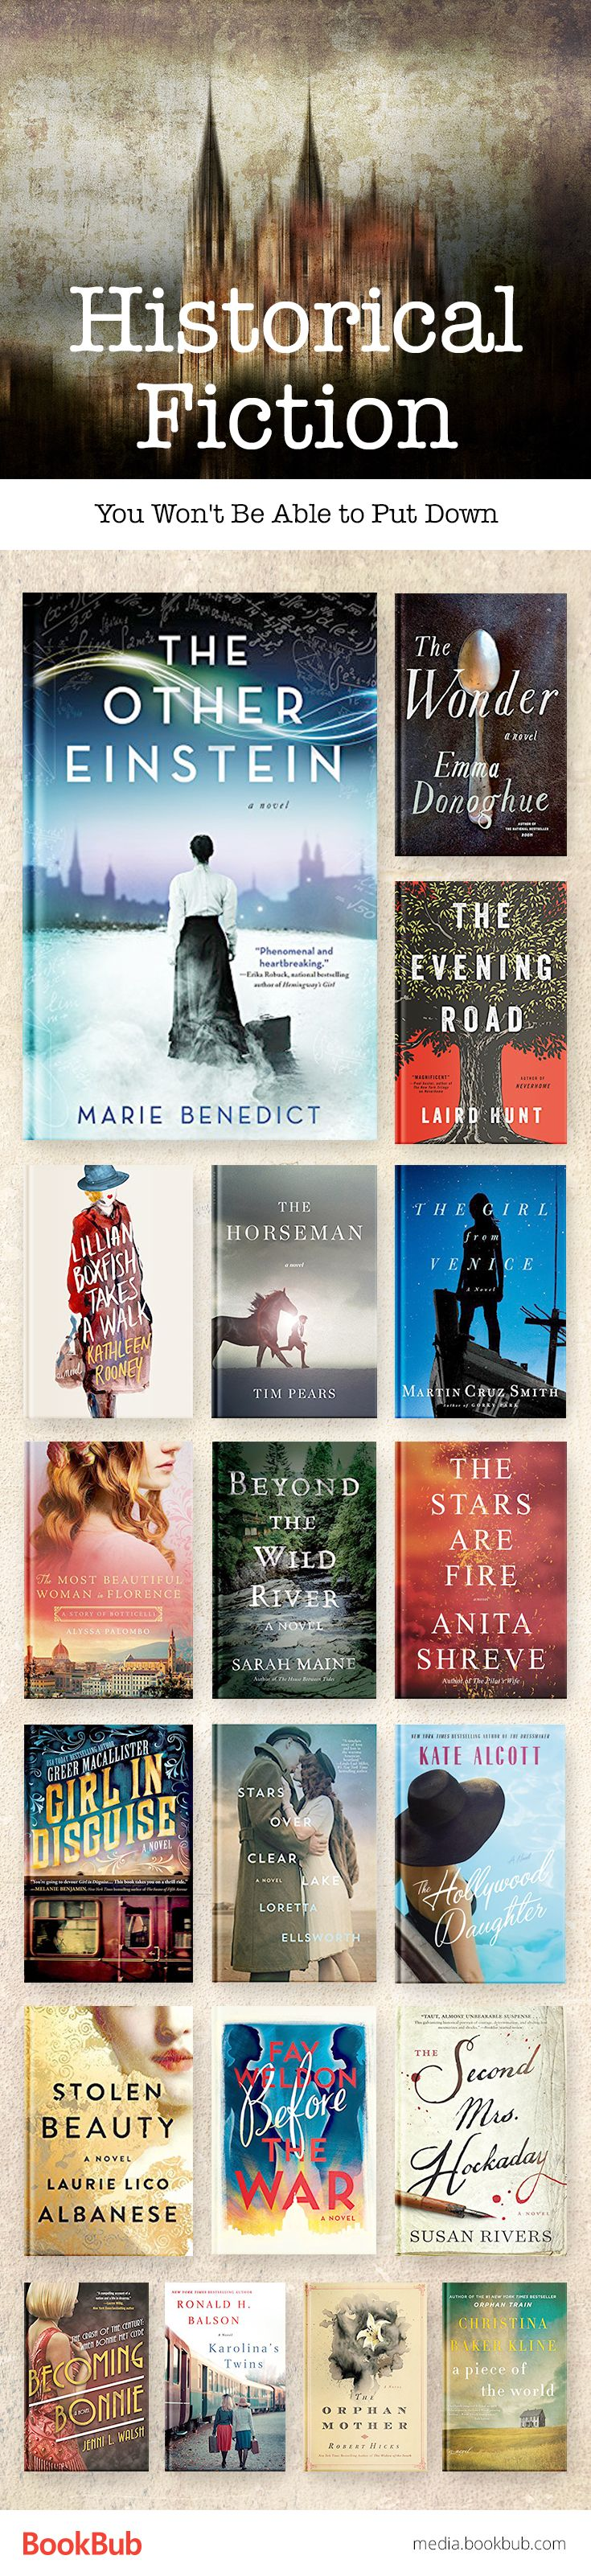 Great historical fiction books you won't be able to put down.